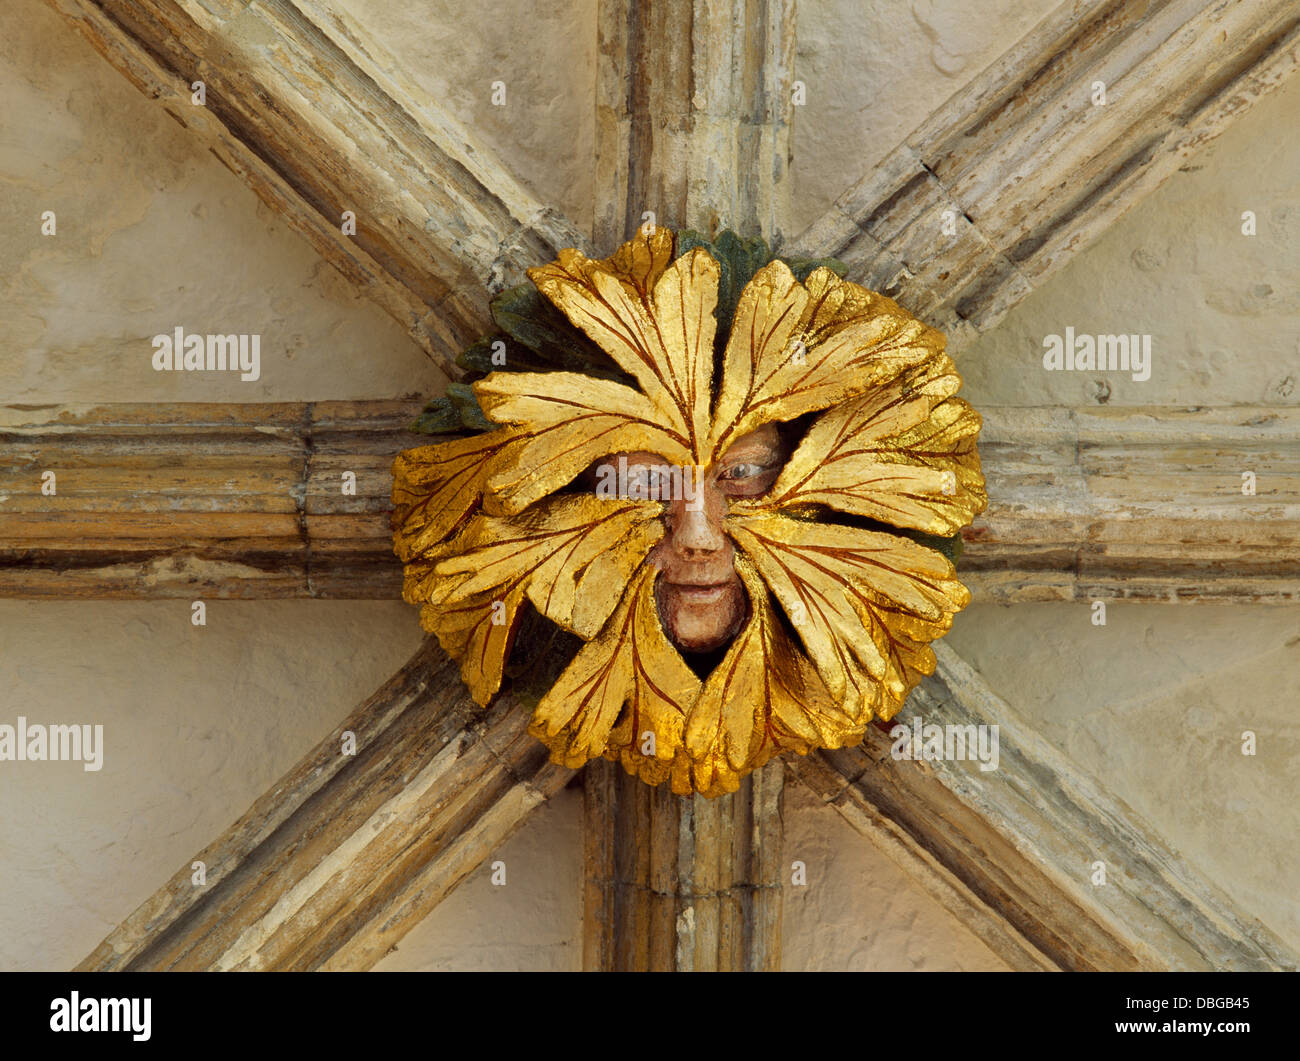 A green man roof boss in the east walk (1297-1318) of Norwich cathedral  priory cloisters, Norfolk, England, wearing a woodland mask of may leaves.